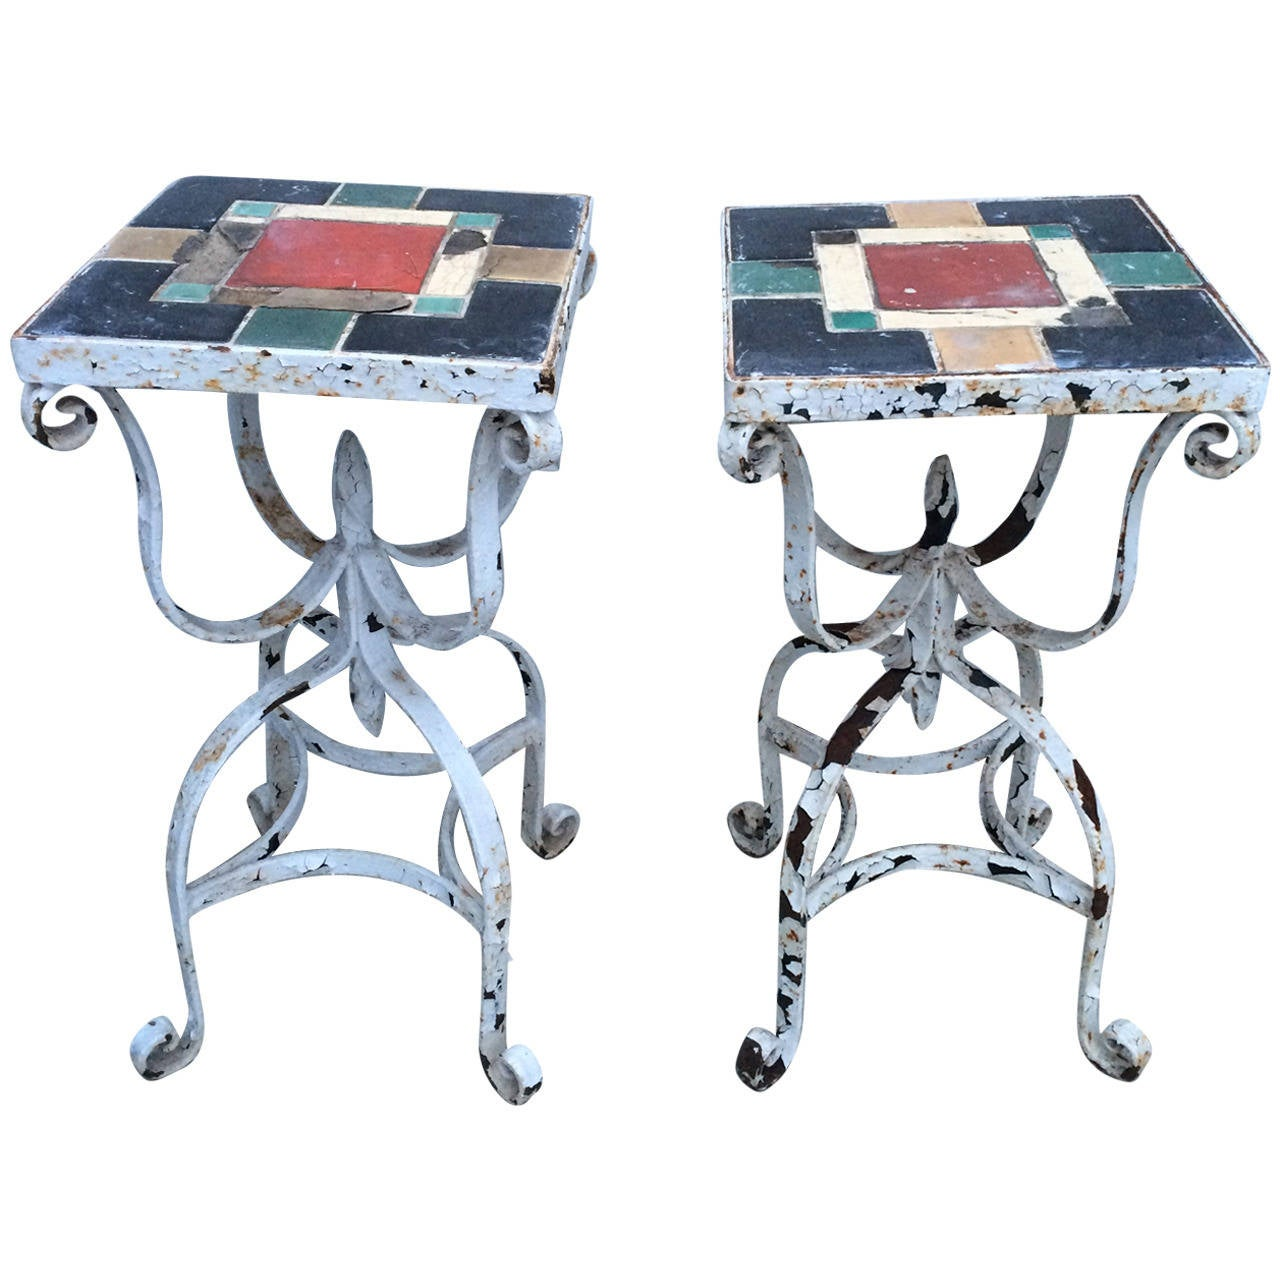 Pair of Iron Tile Top Tables